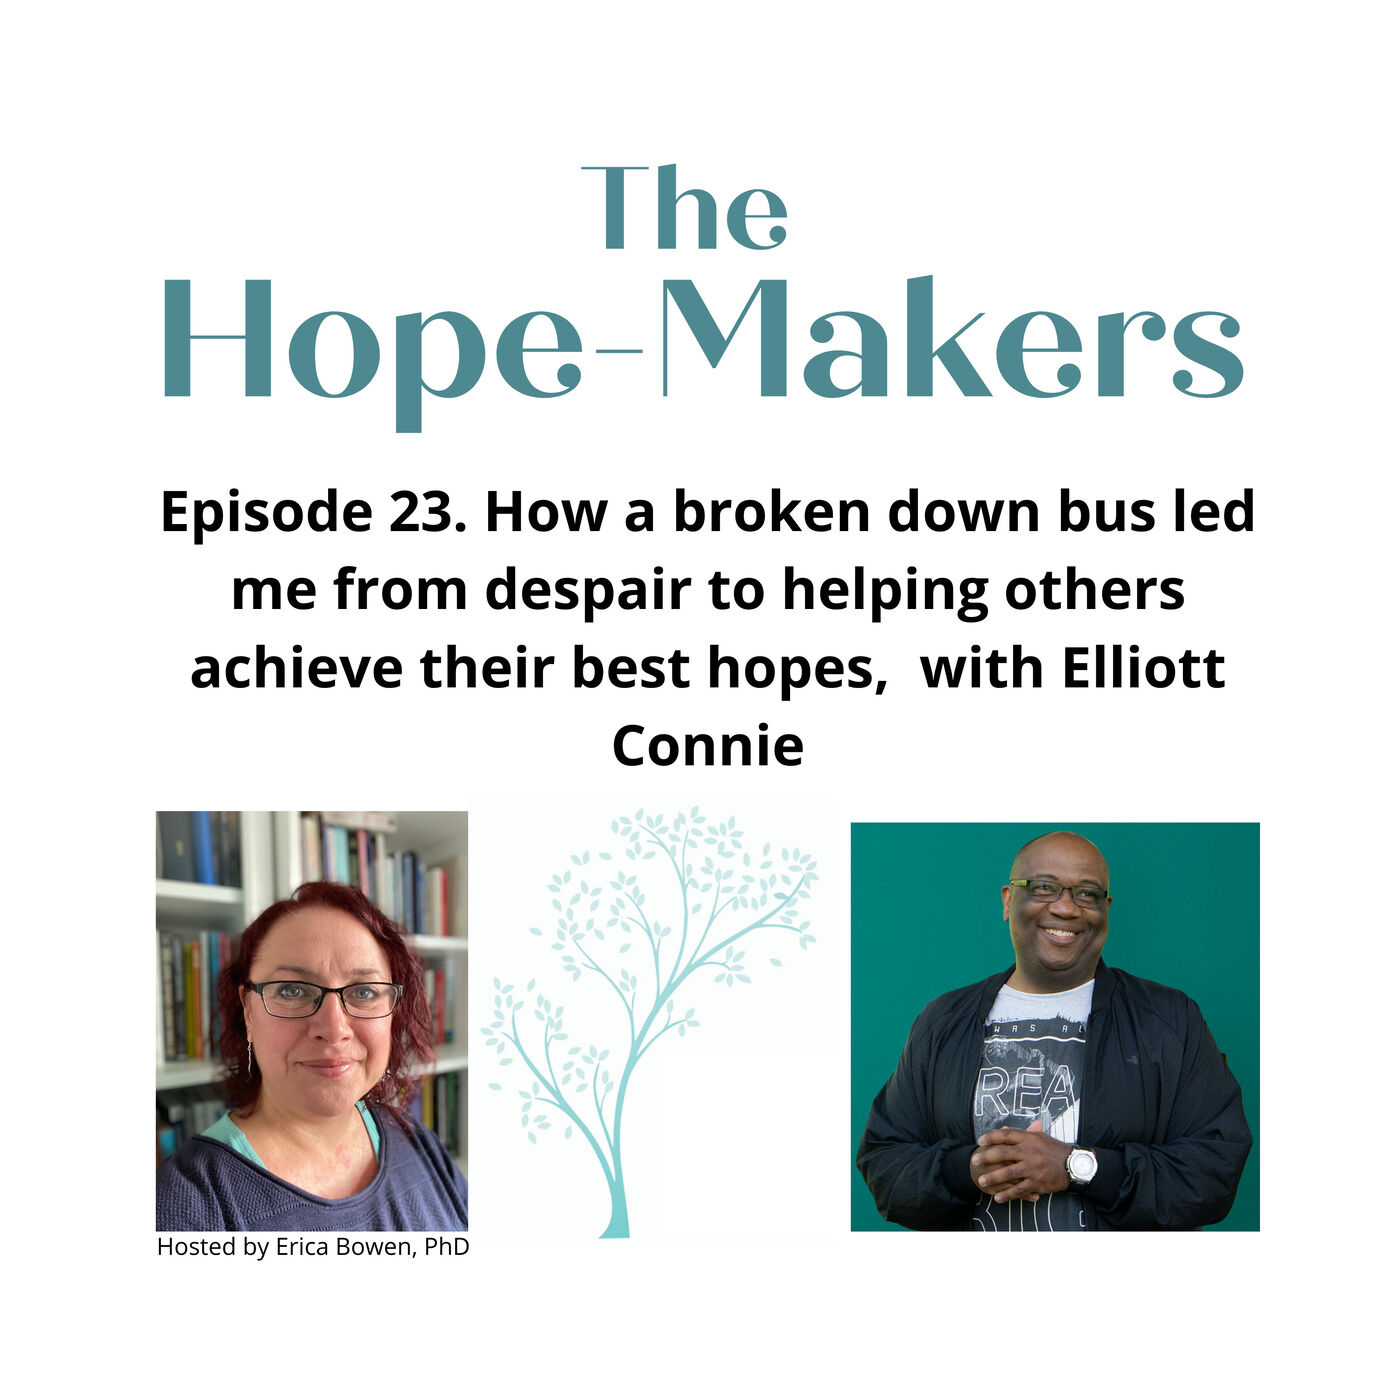 Episode 23. How a broken down bus led me from despair to helping others achieve their best hopes, with Elliott Connie